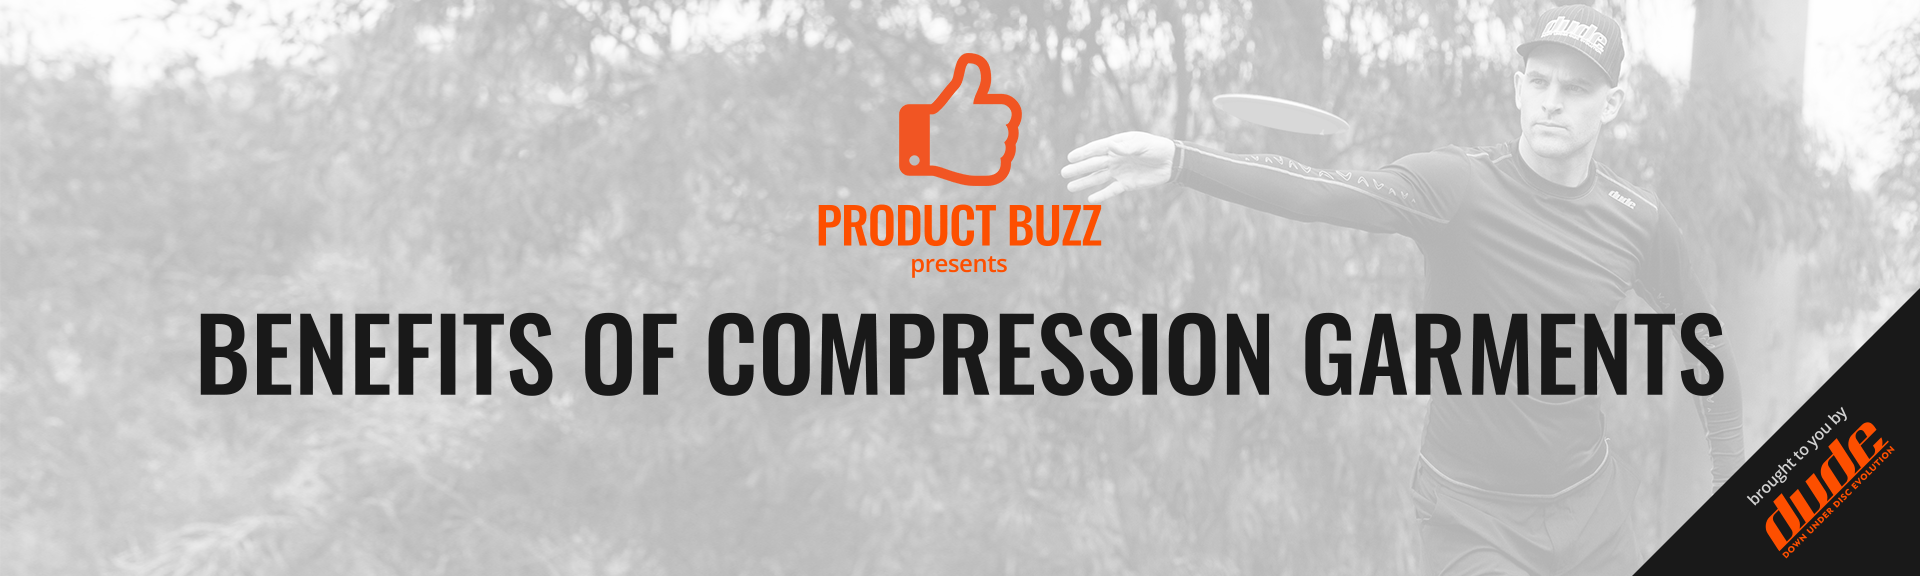 Dude Clothing Product Buzz Benefits of Compression Garments